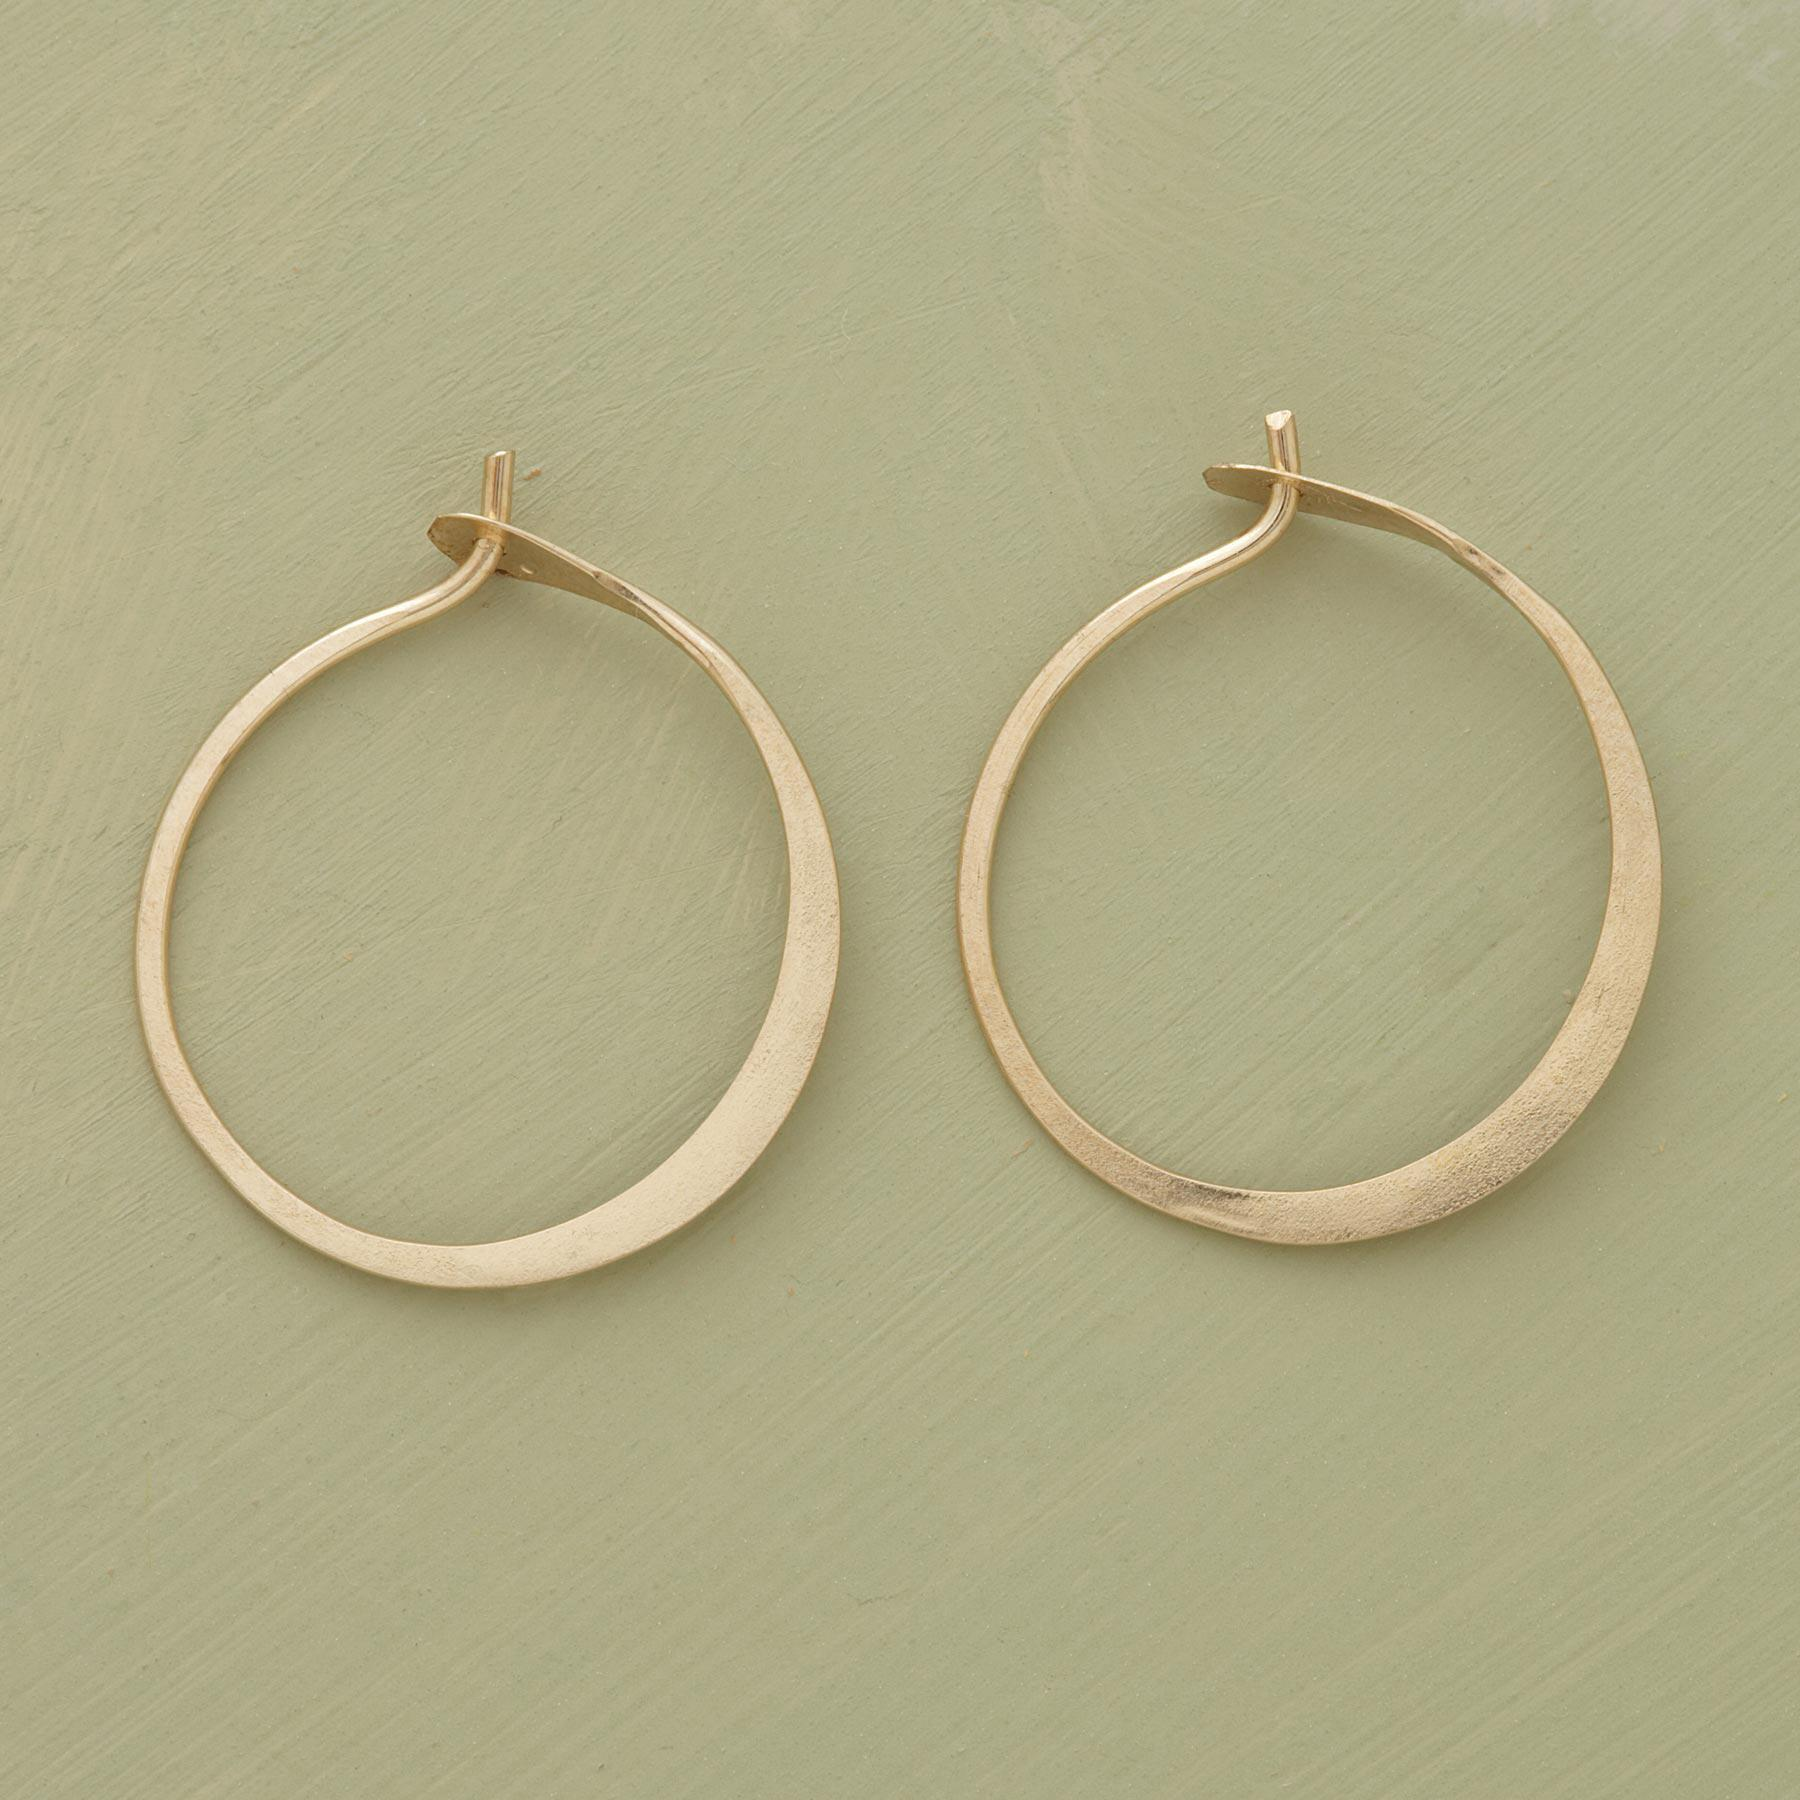 Small Hand-Forged Gold Hoops by Melissa Joy Manning